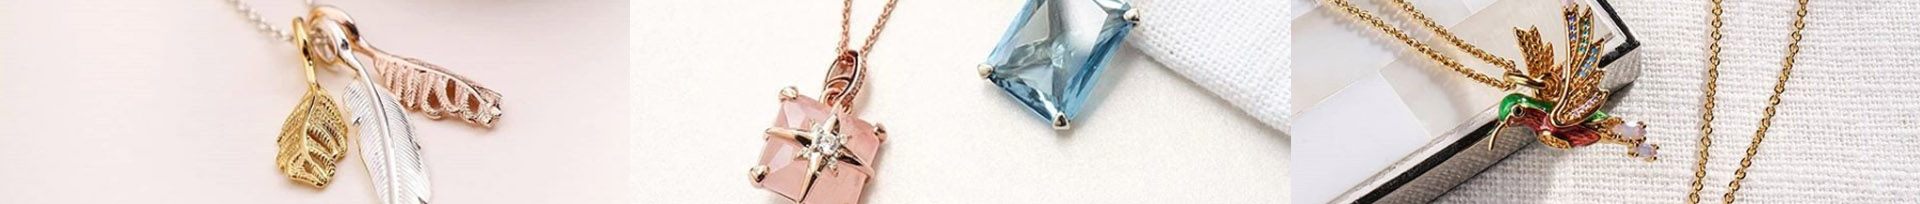 thomas-sabo-jewellery-category-banner1.jpg